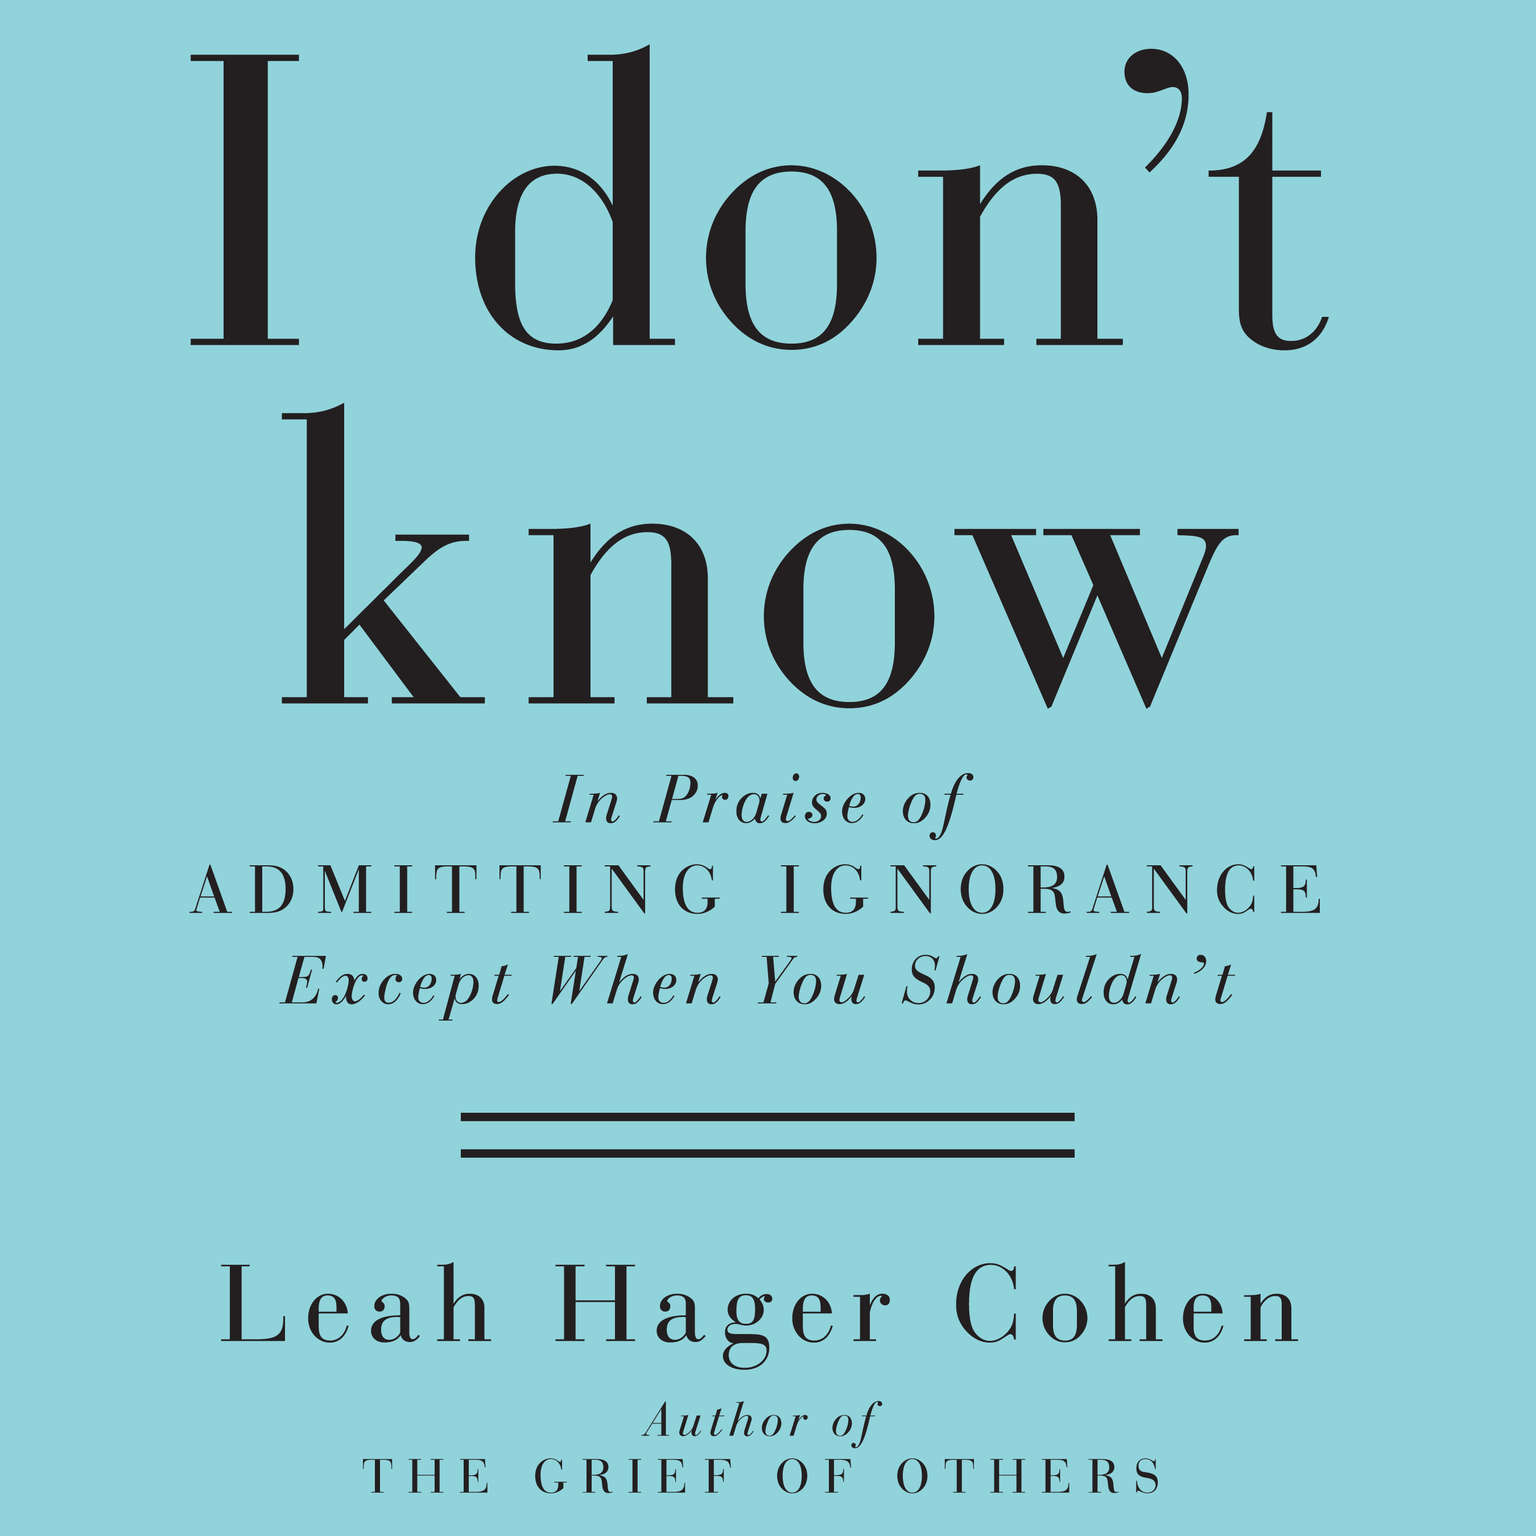 Printable I Don't Know: In Praise of Admitting Ignorance and Doubt (Except When You Shouldn't) Audiobook Cover Art